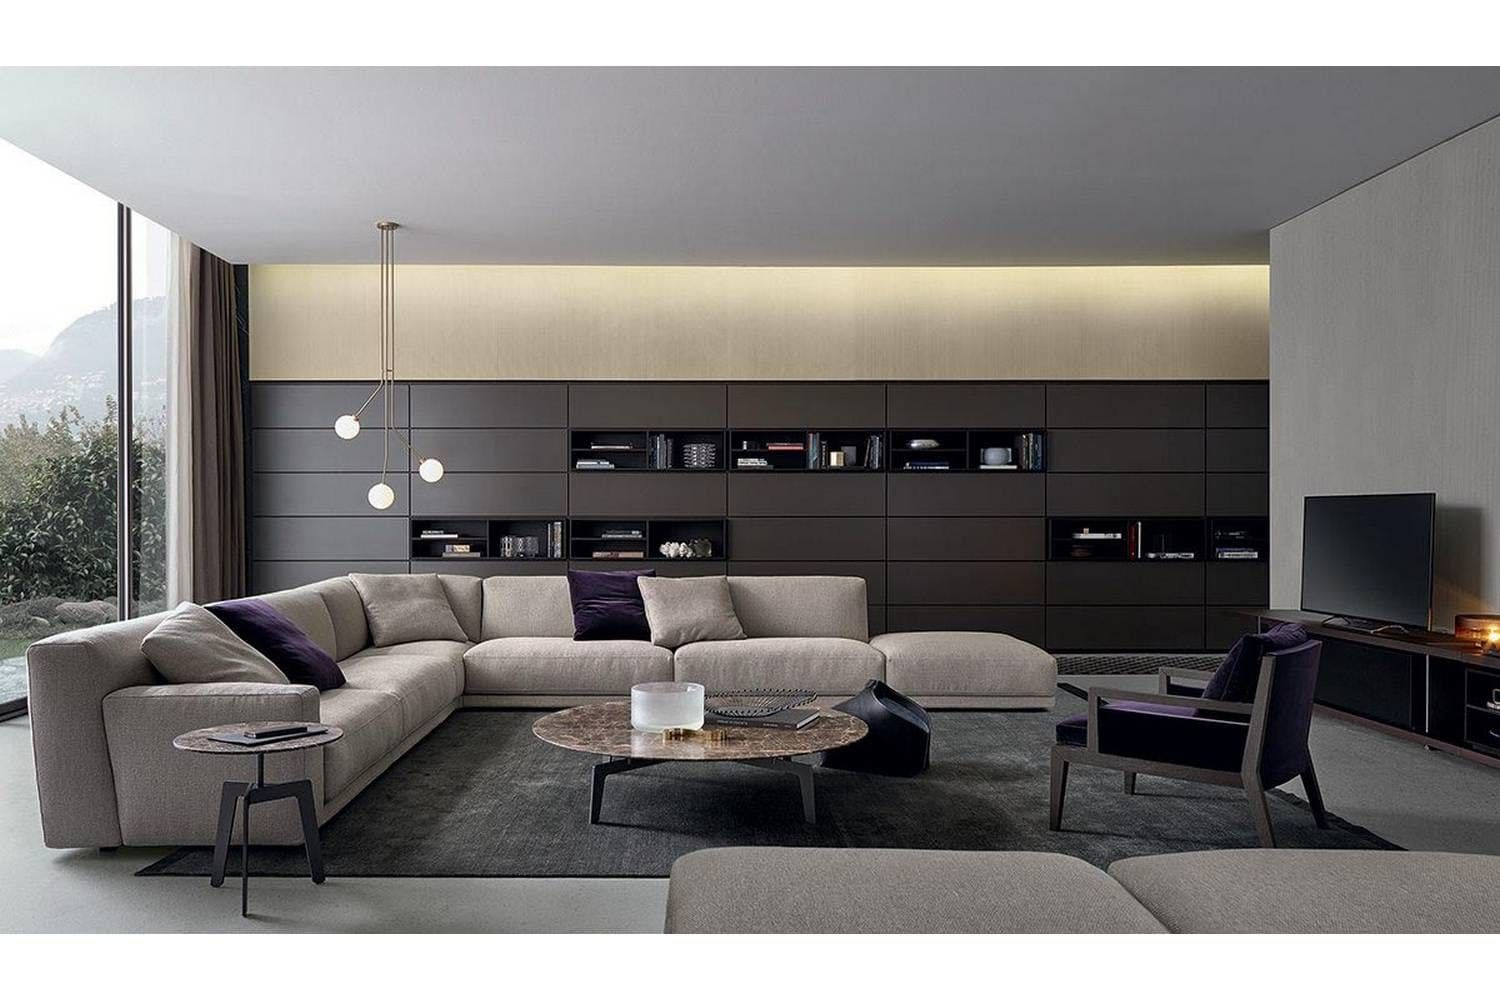 Wall system bookcase by cr s poliform for poliform for Casa clasica moderna interiores